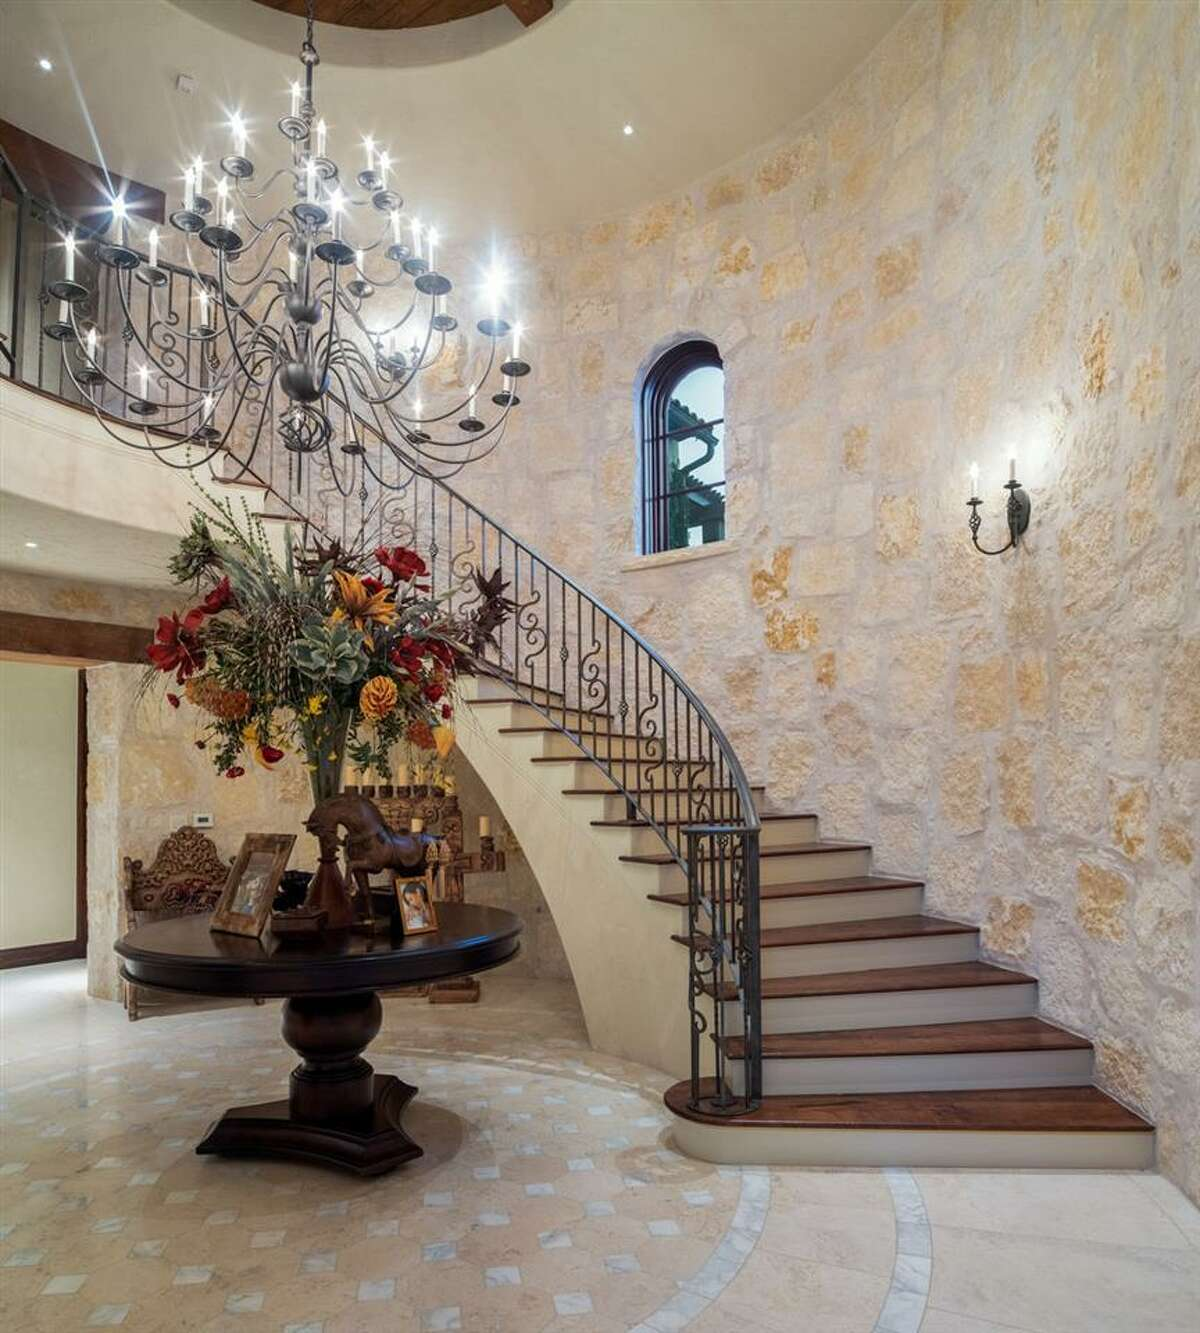 This Horseshoe Bay mansion, designed by prominent architects, is listed at $8.9 million.